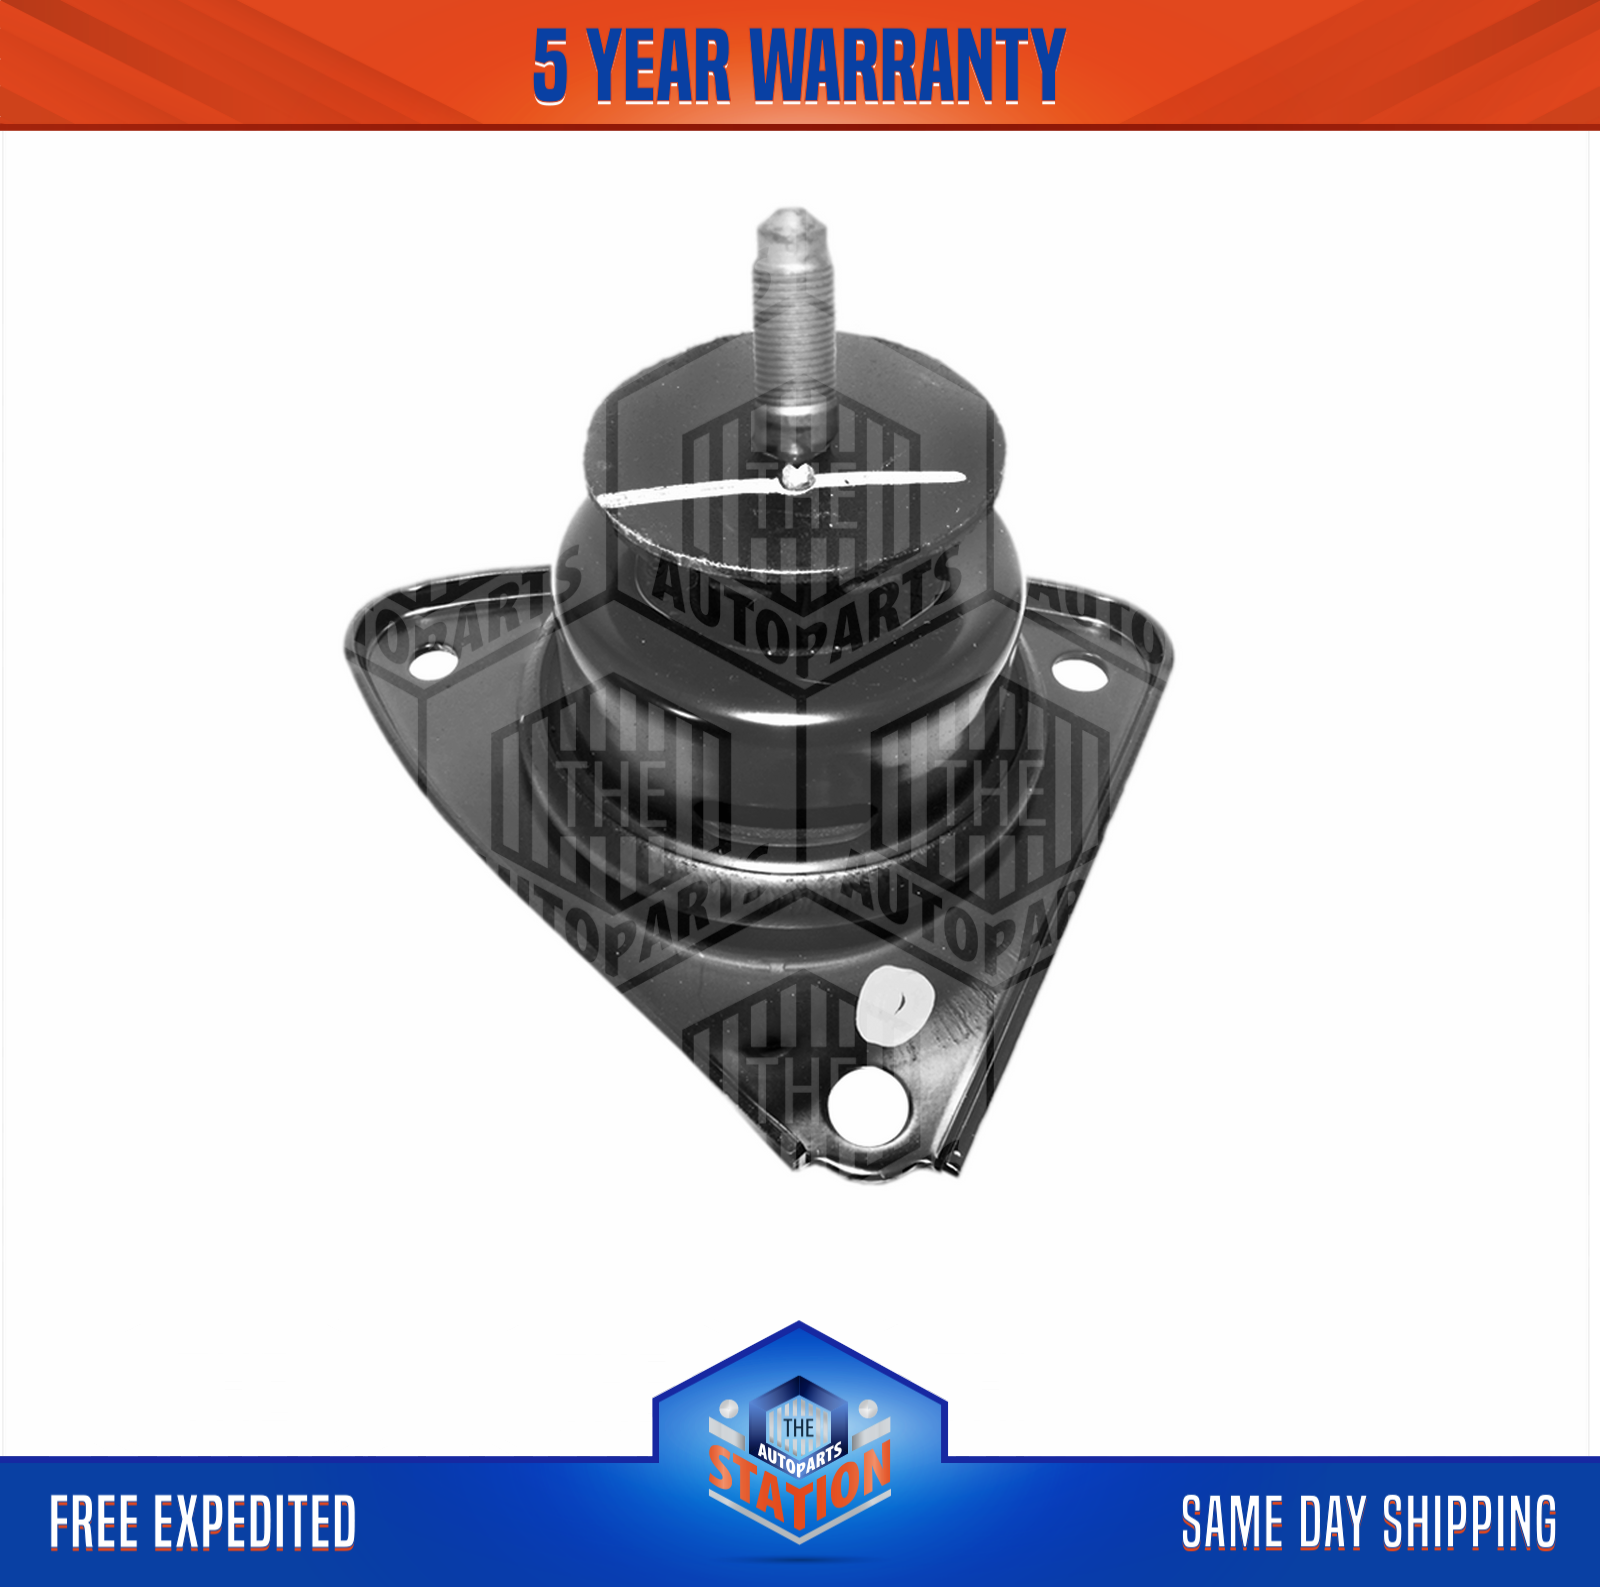 Engine Mount Front Right 2.0 2.4 L For Hyundai Elantra Kia Forte |